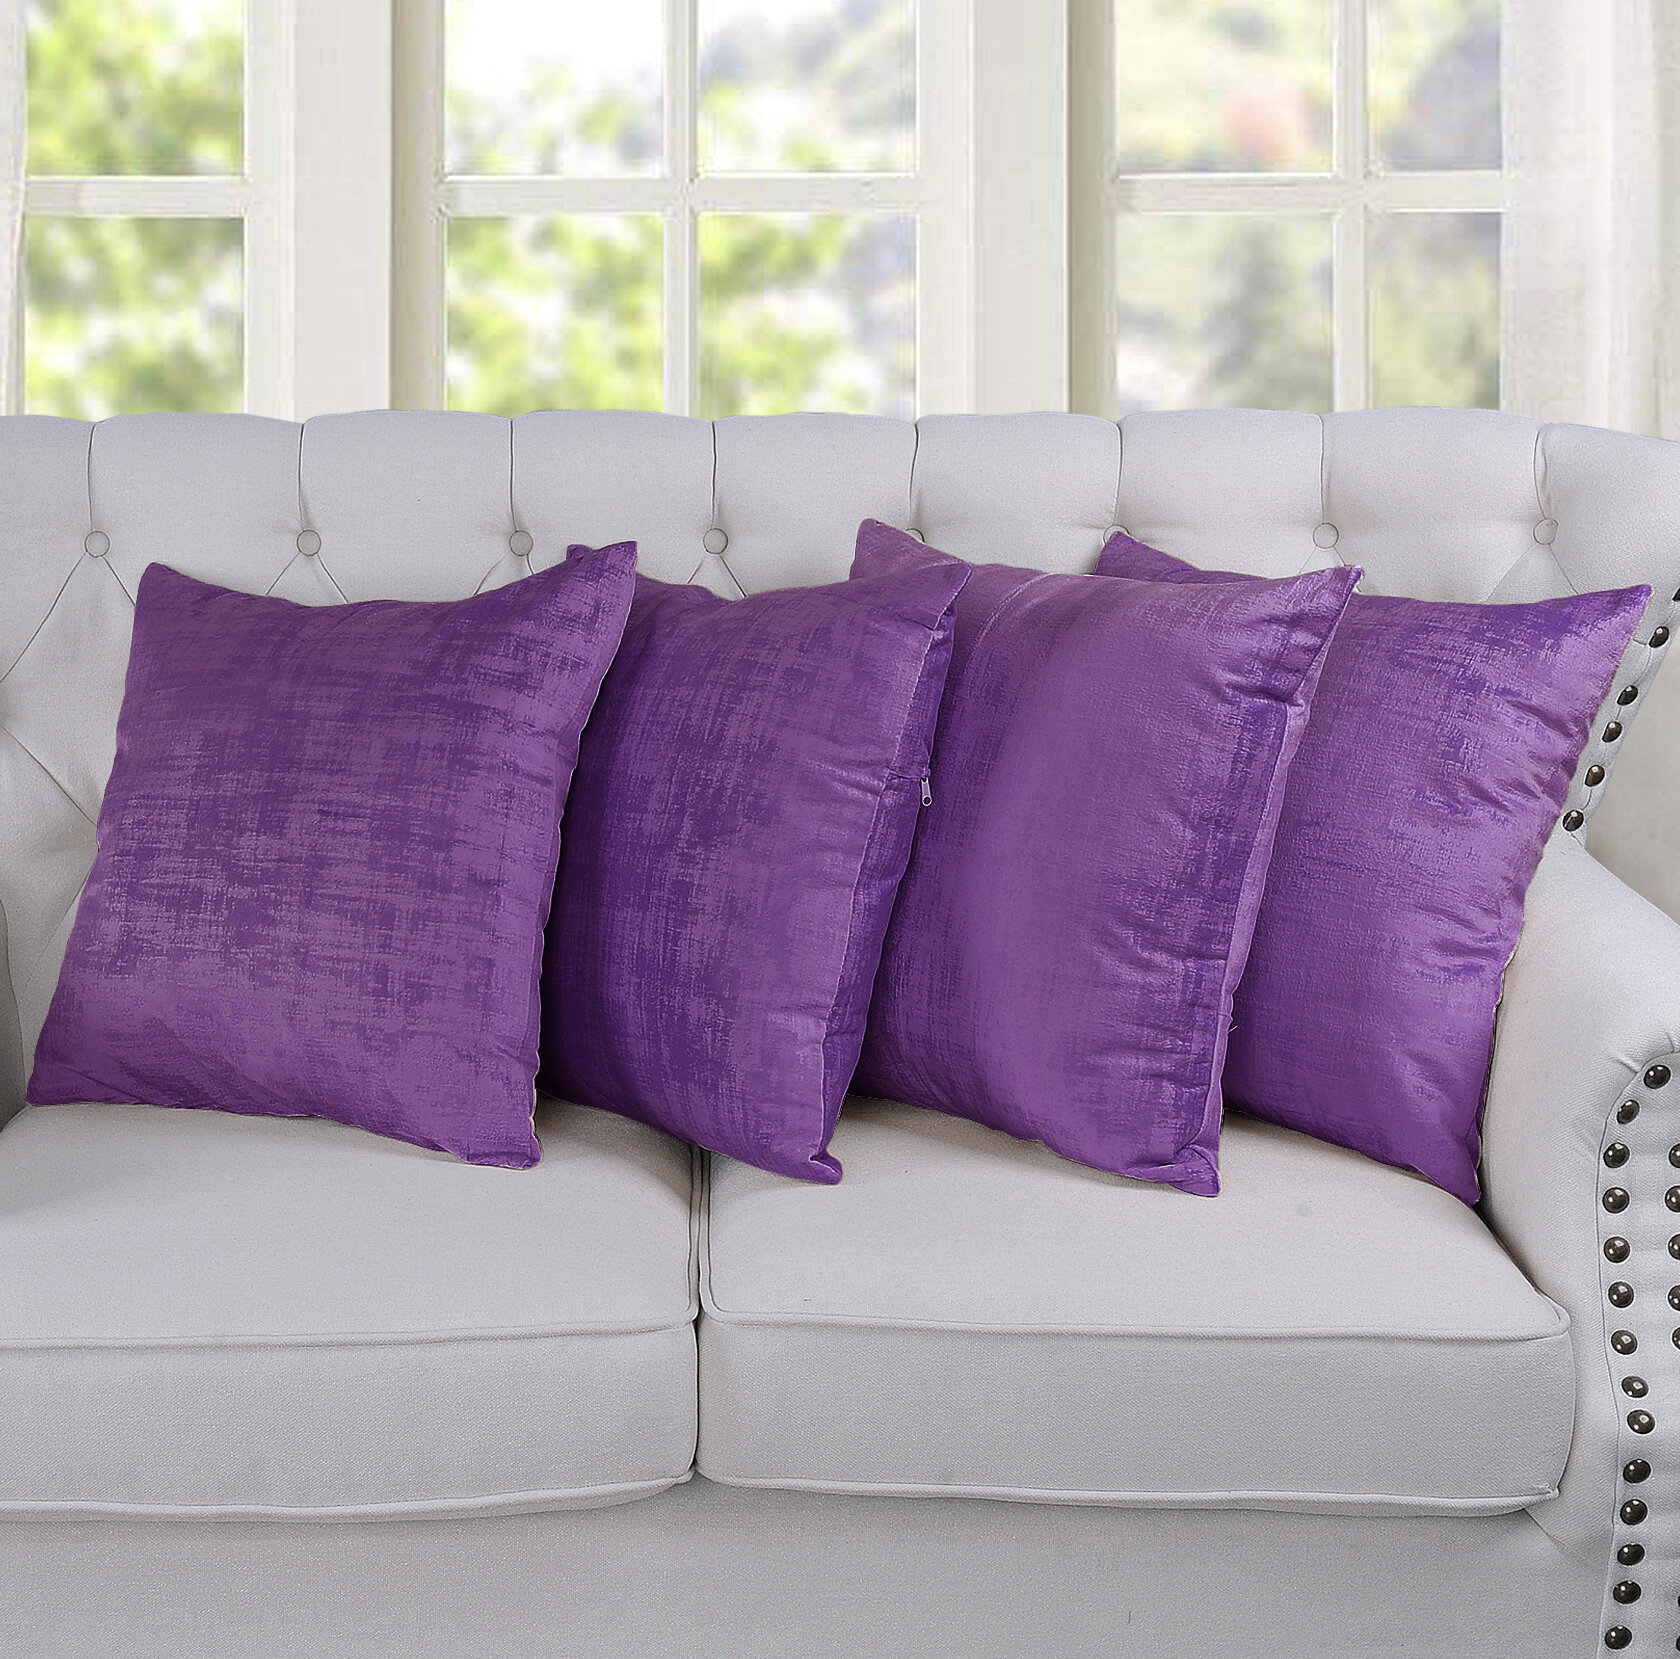 Purple Throw Pillows Free Shipping Over 35 Wayfair